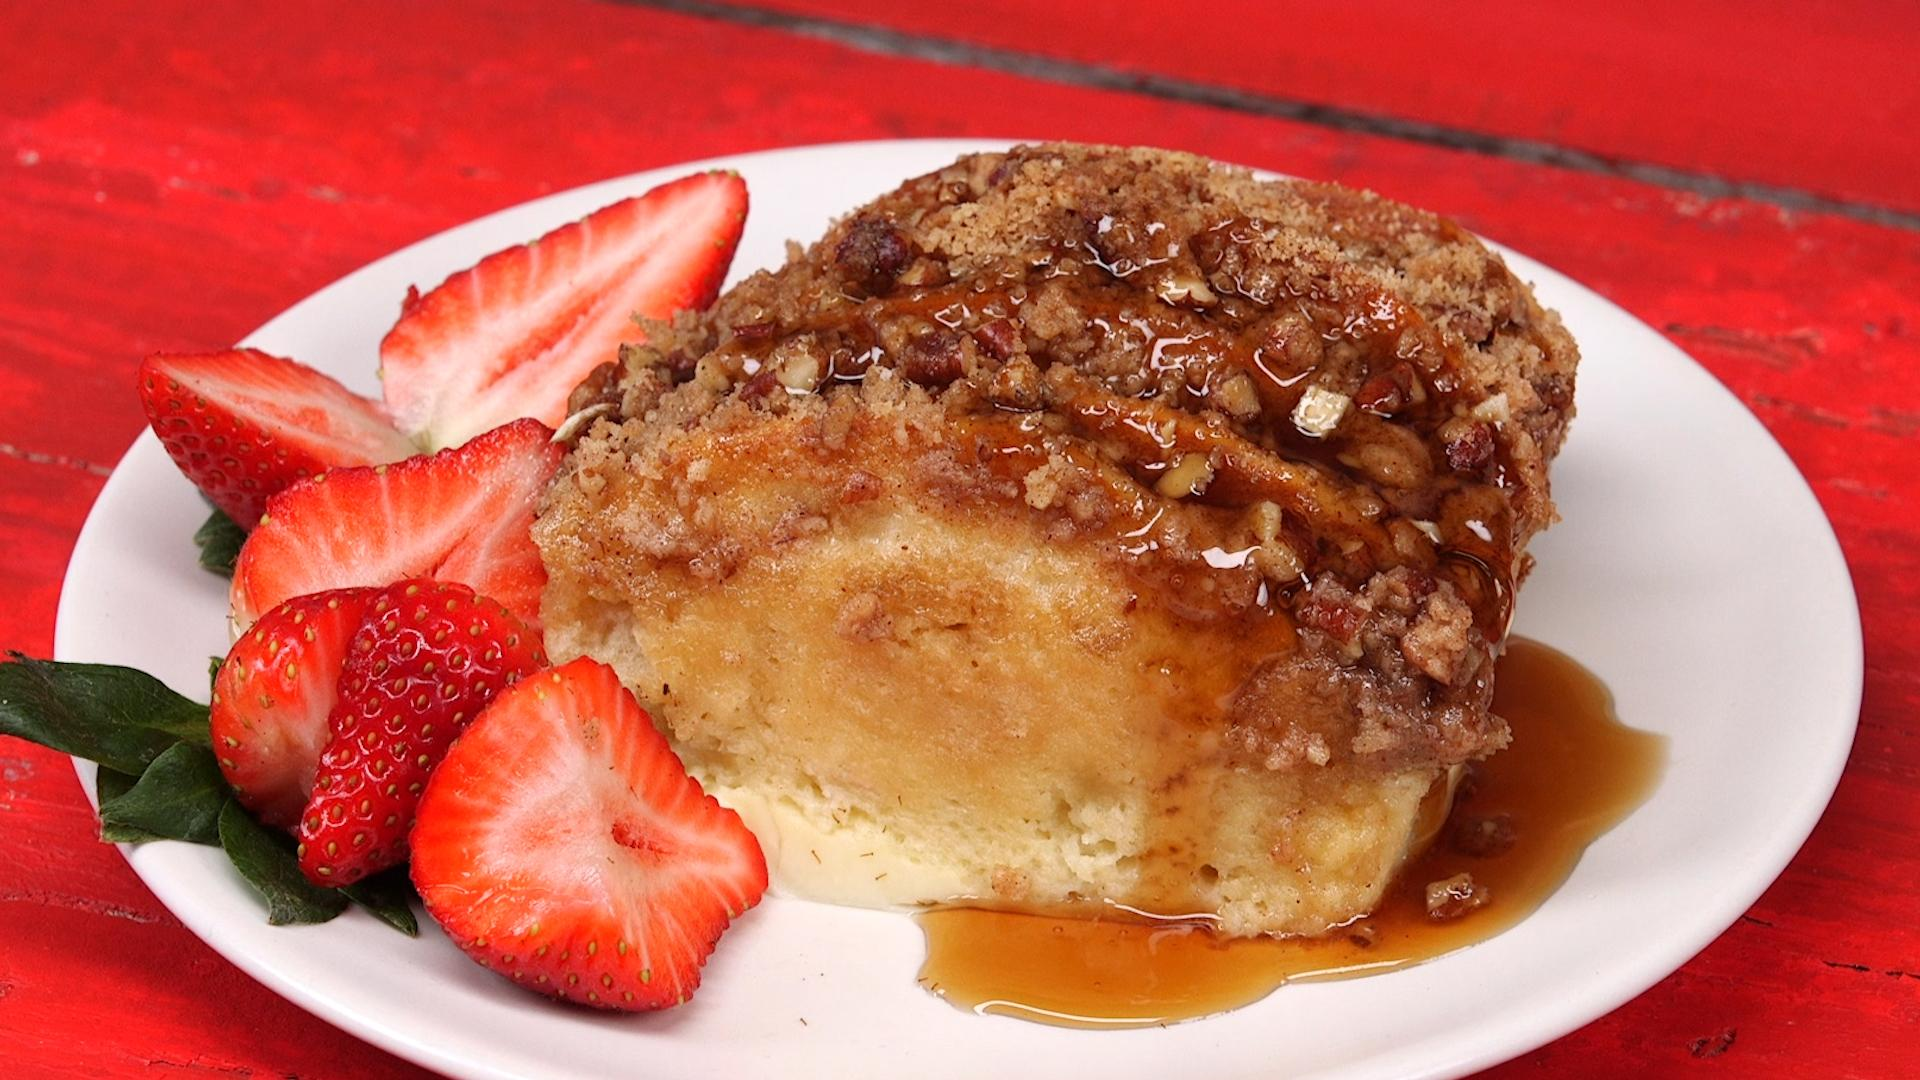 Pancake Bake with Cinnamon Streusel Recipe